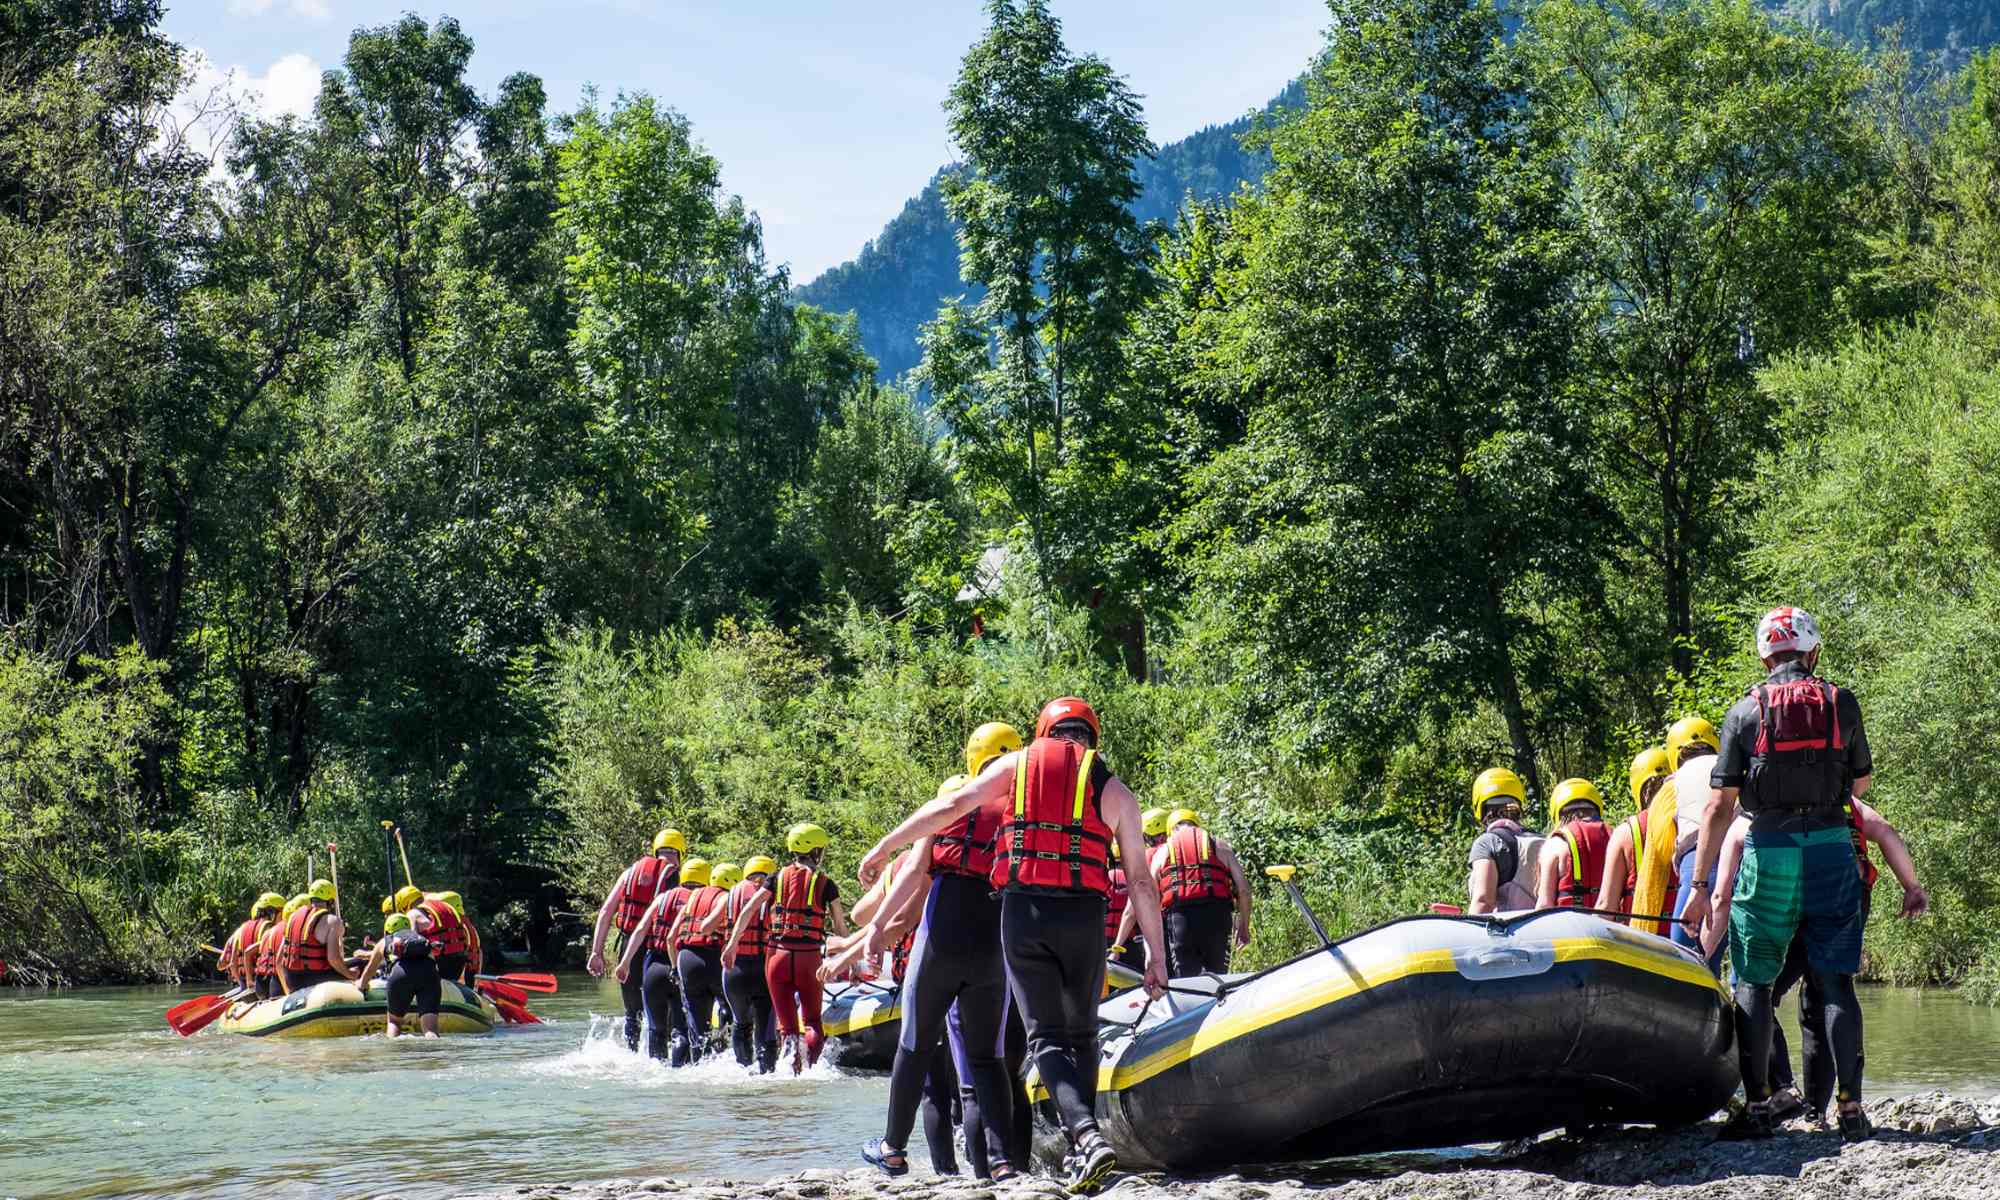 Several groups of people carrying their rafts towards the entry point of the river.